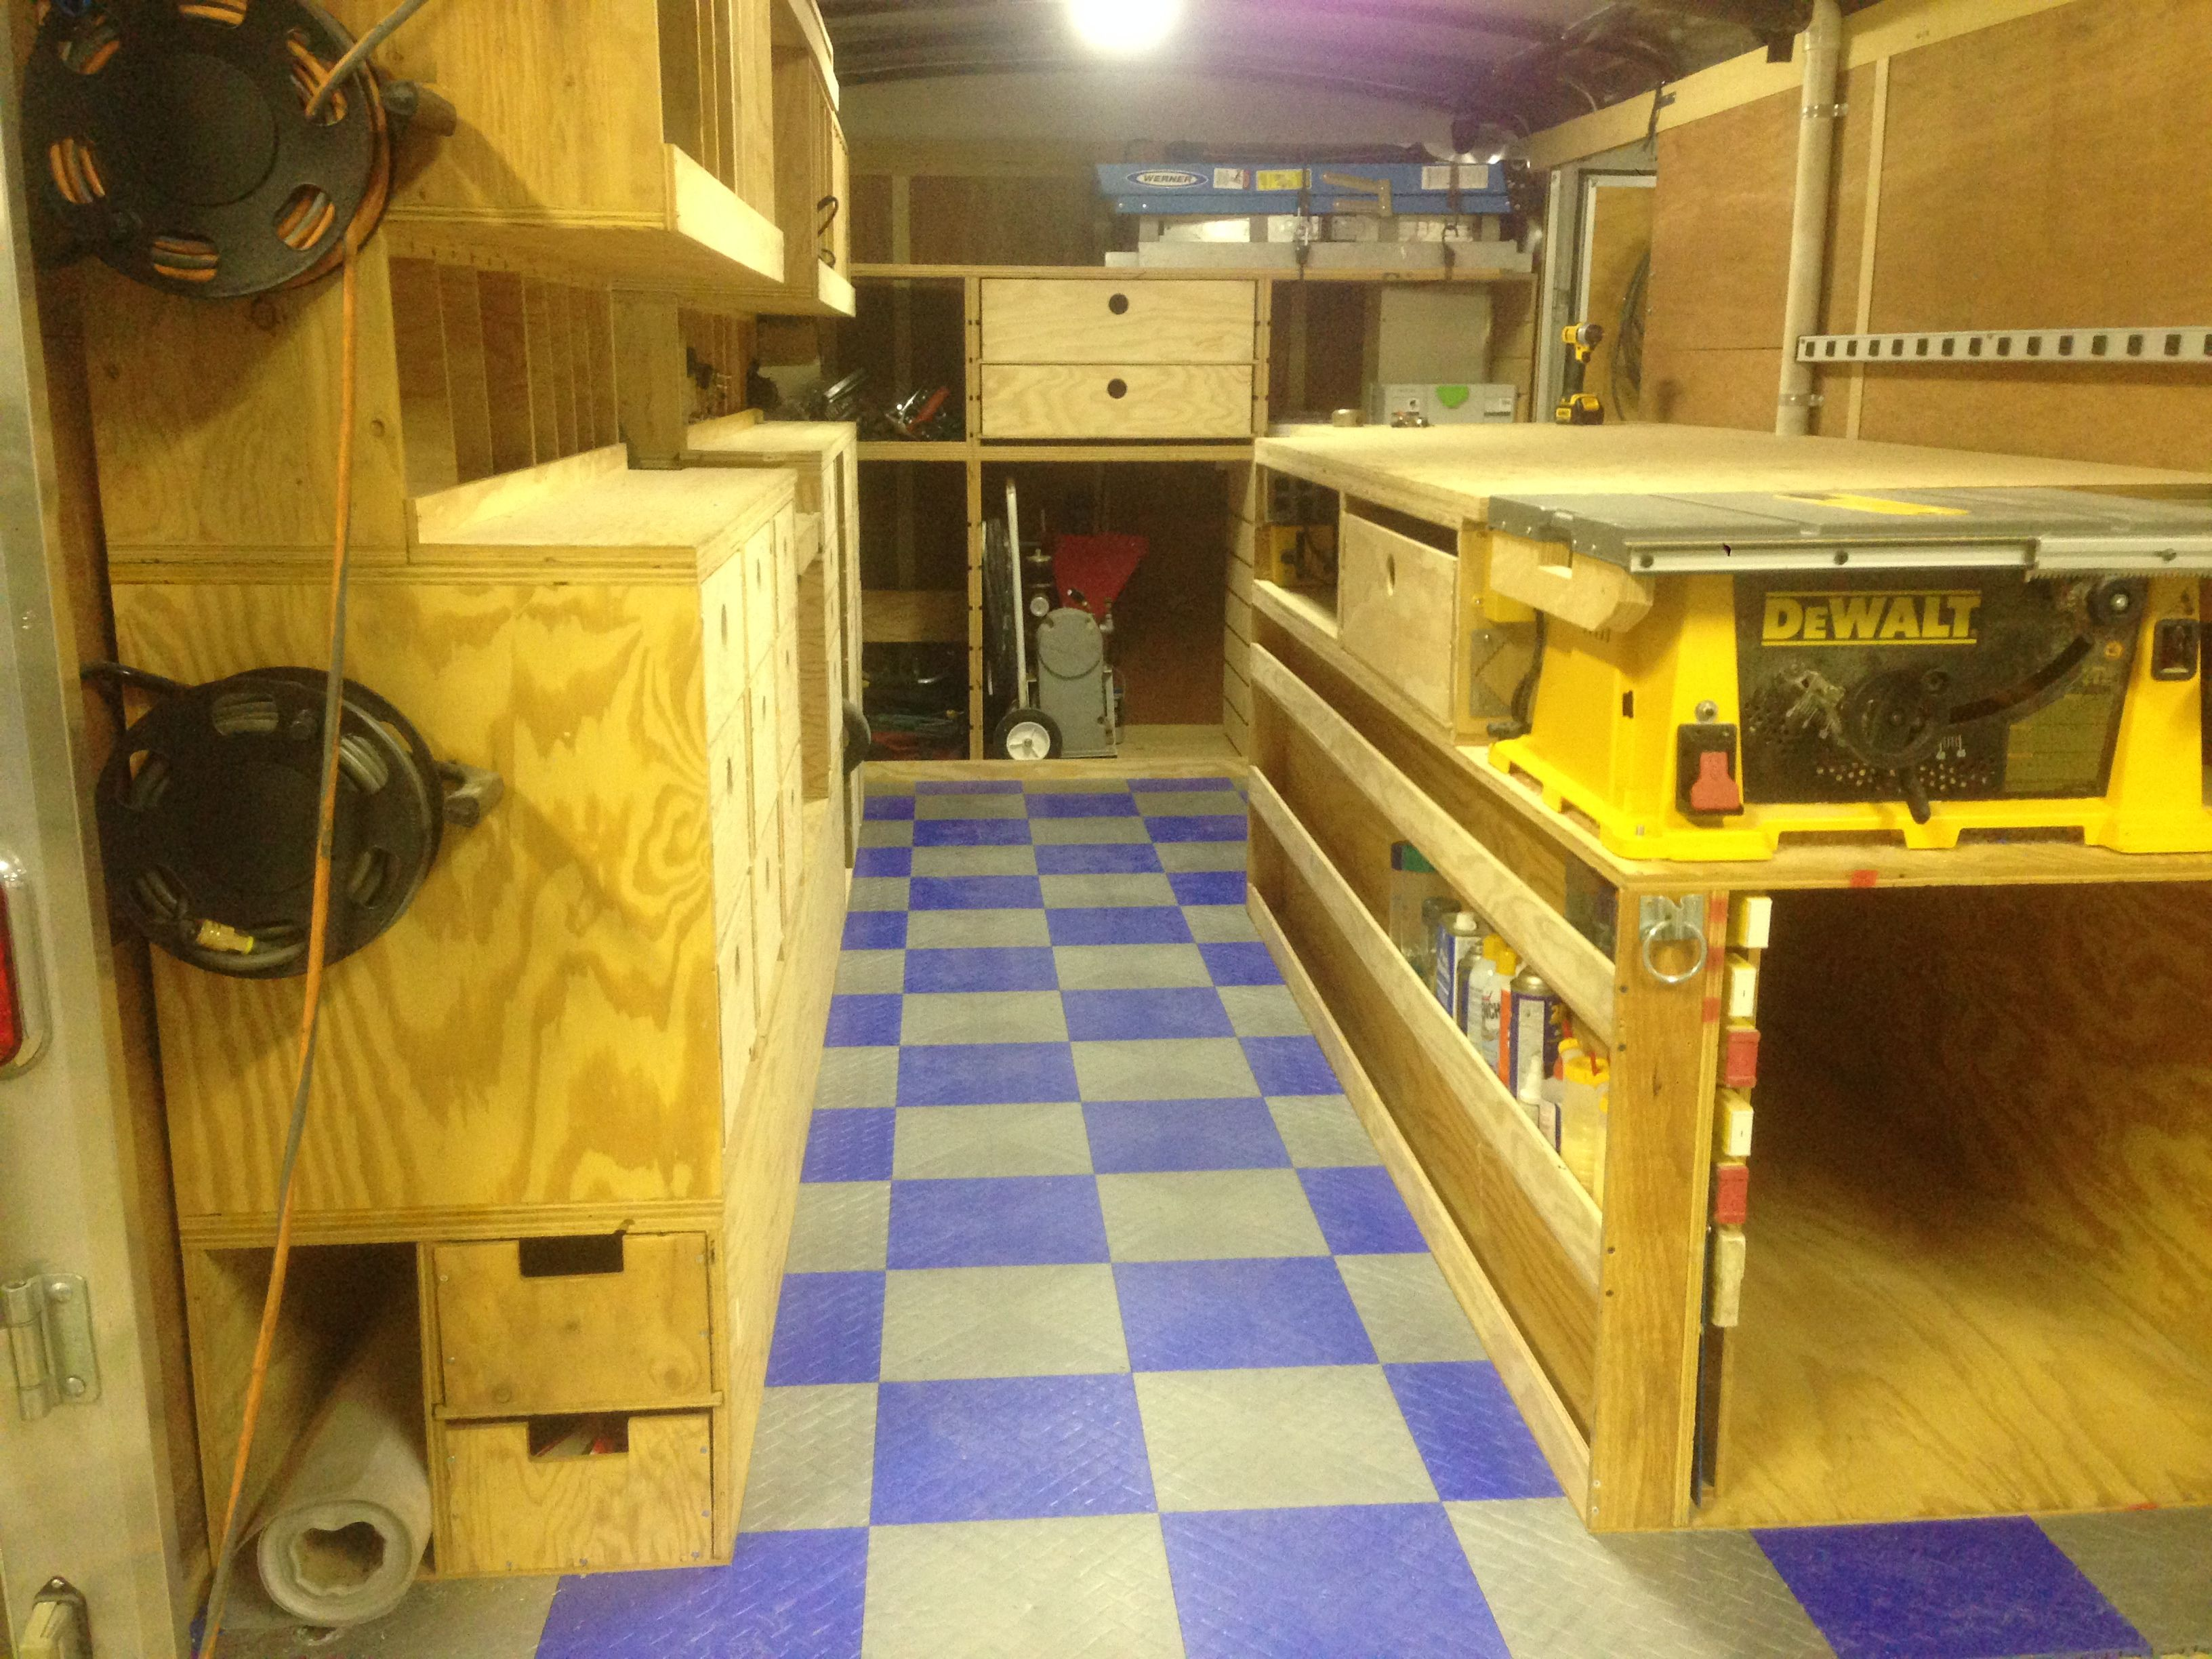 Enclosed Bed Google Search: Tool Trailer Organization - Google Search